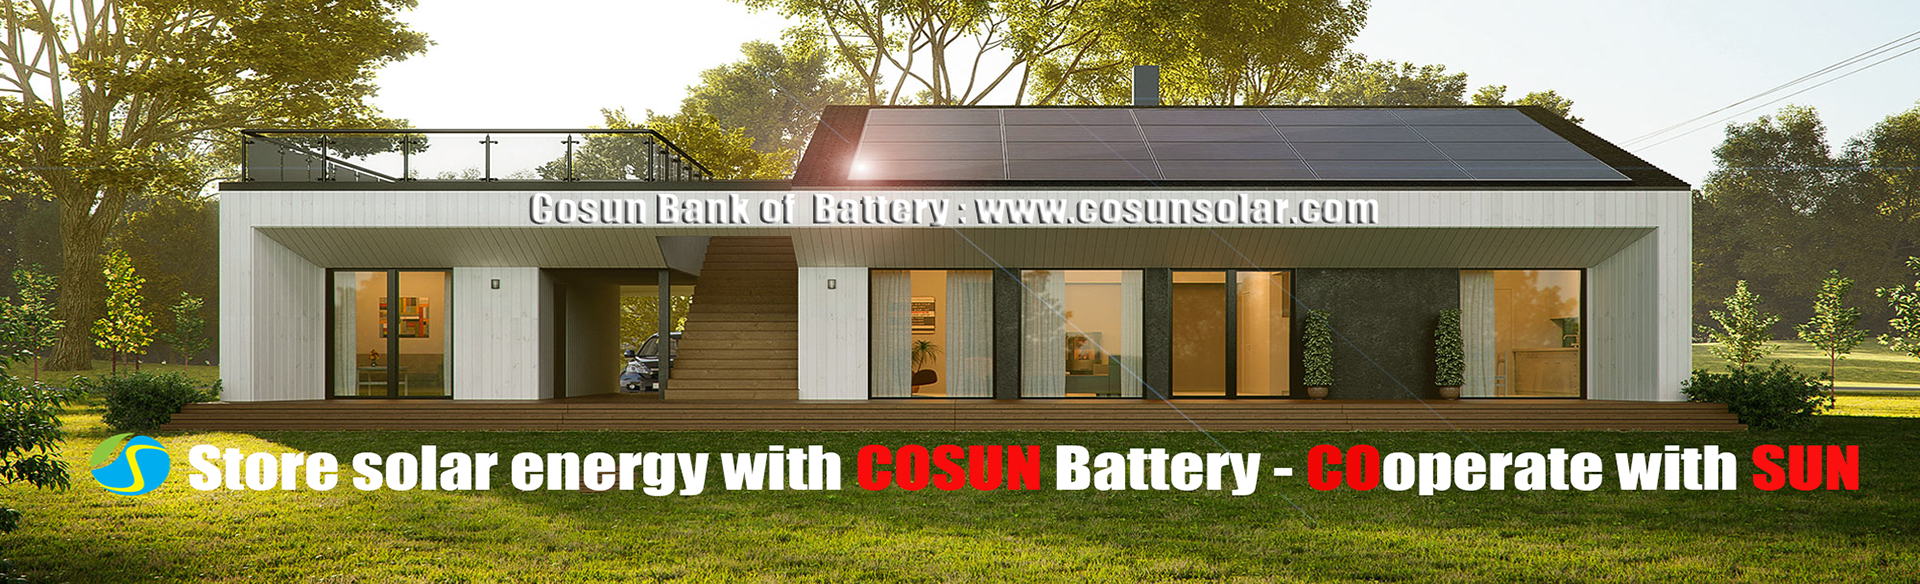 Cosun bank of battery LFP 1920-584px